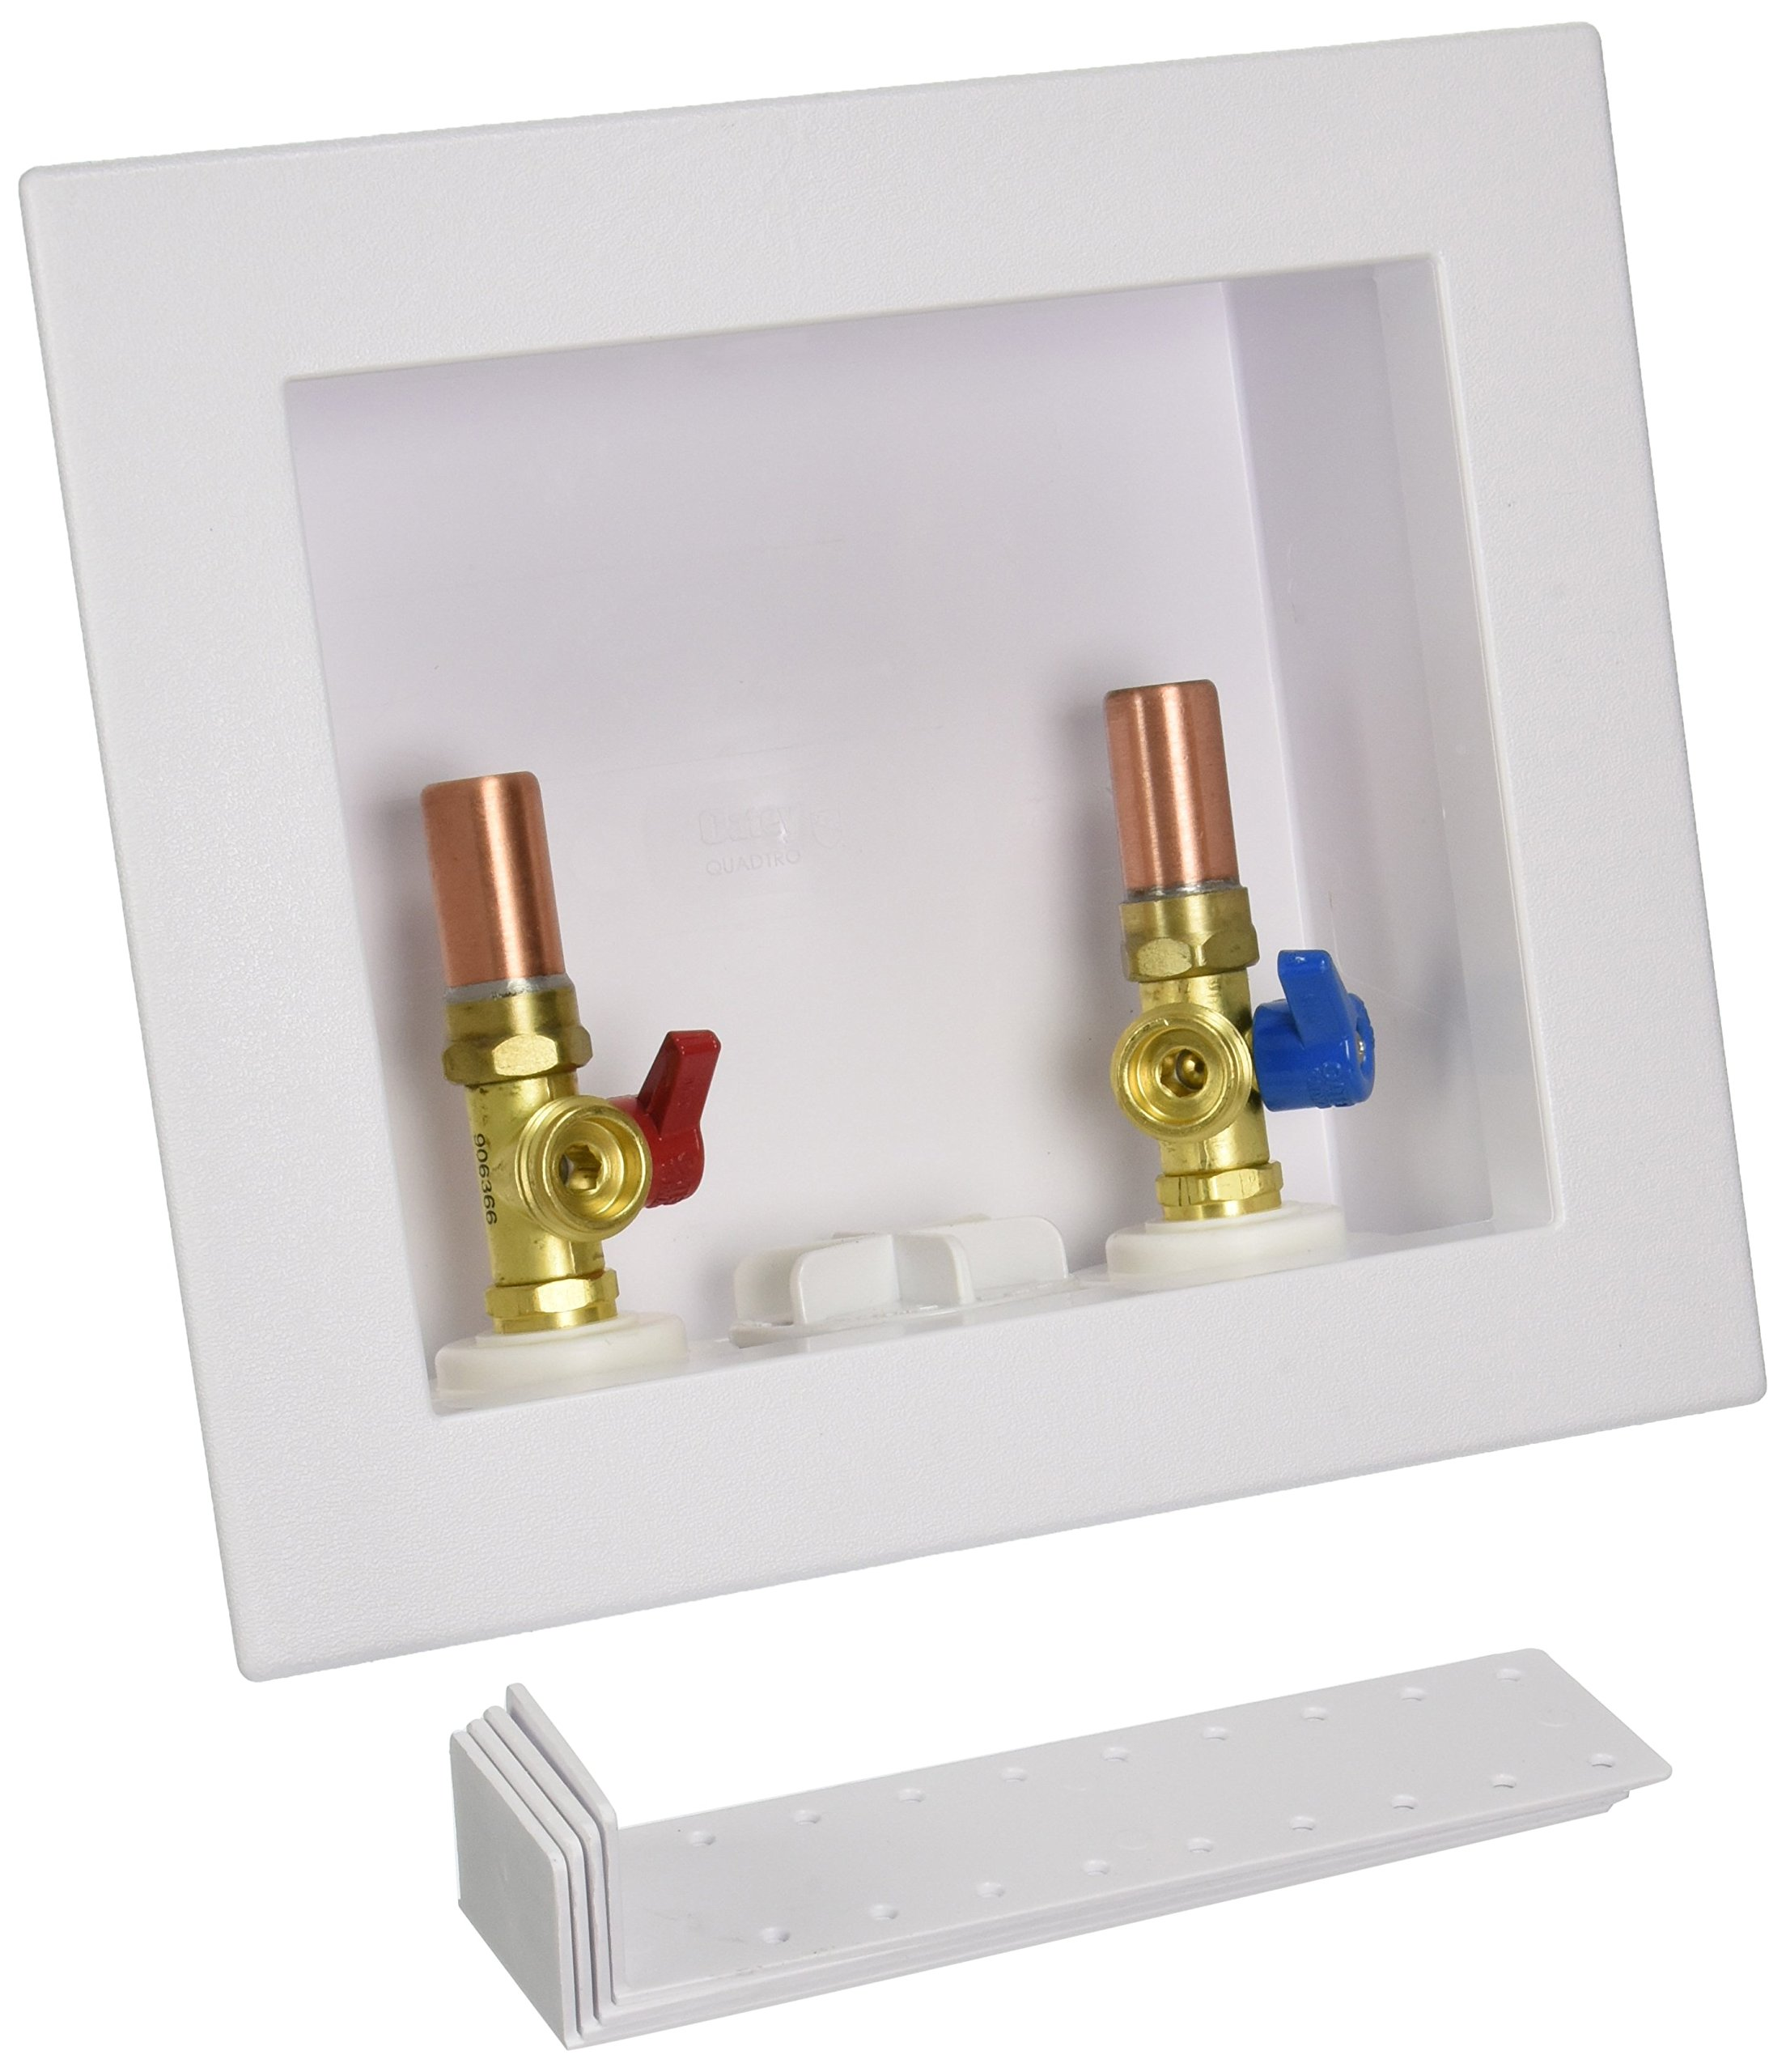 Oatey 38569 Quadtro Copper Sweat Washing Machine Outlet Box with Hammers, 2-Inch